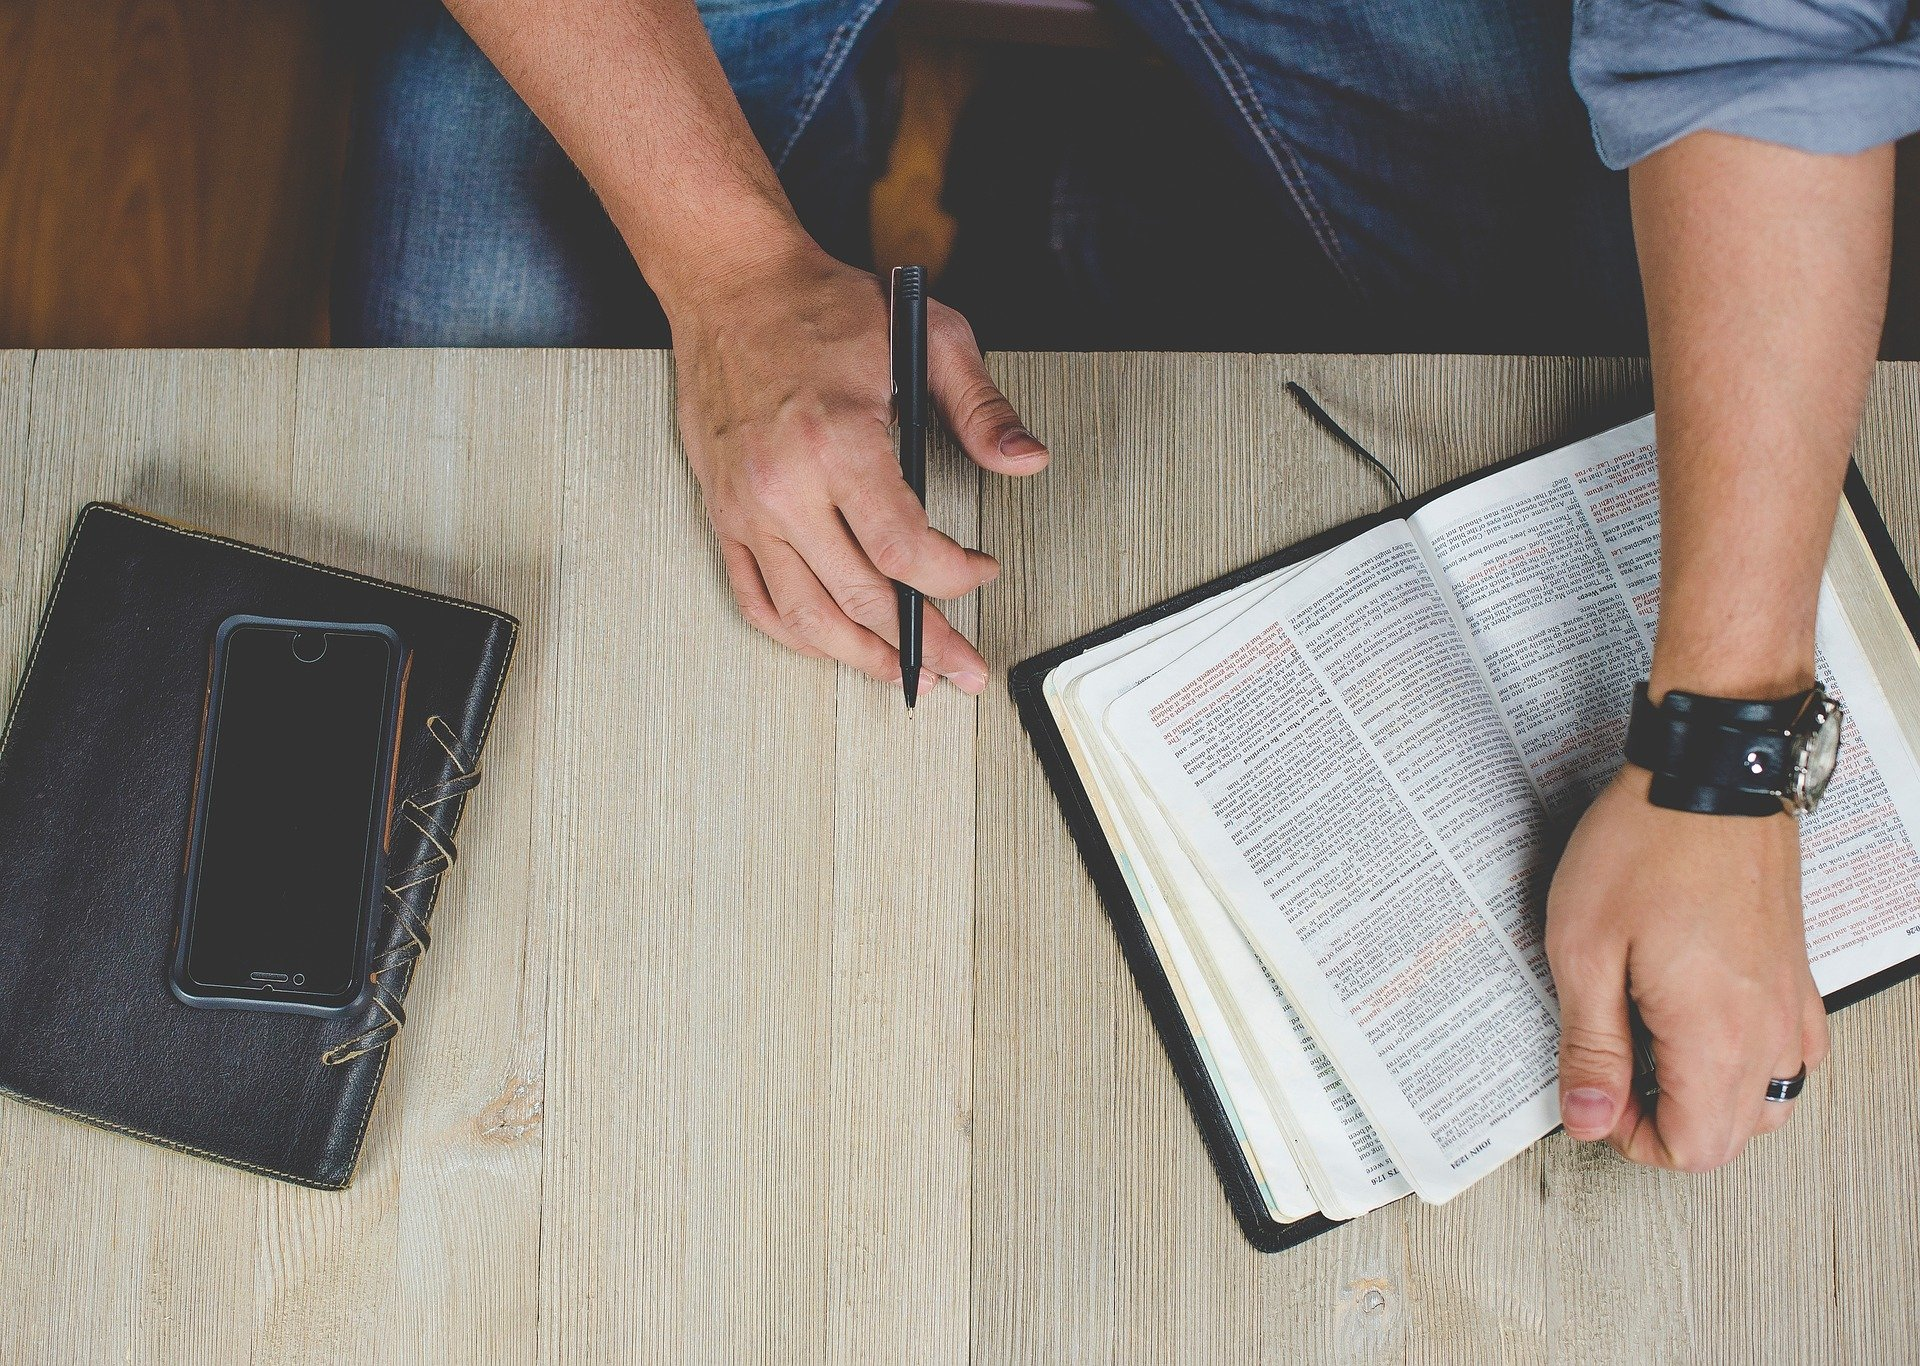 Person holding Bible with phone and journal on table